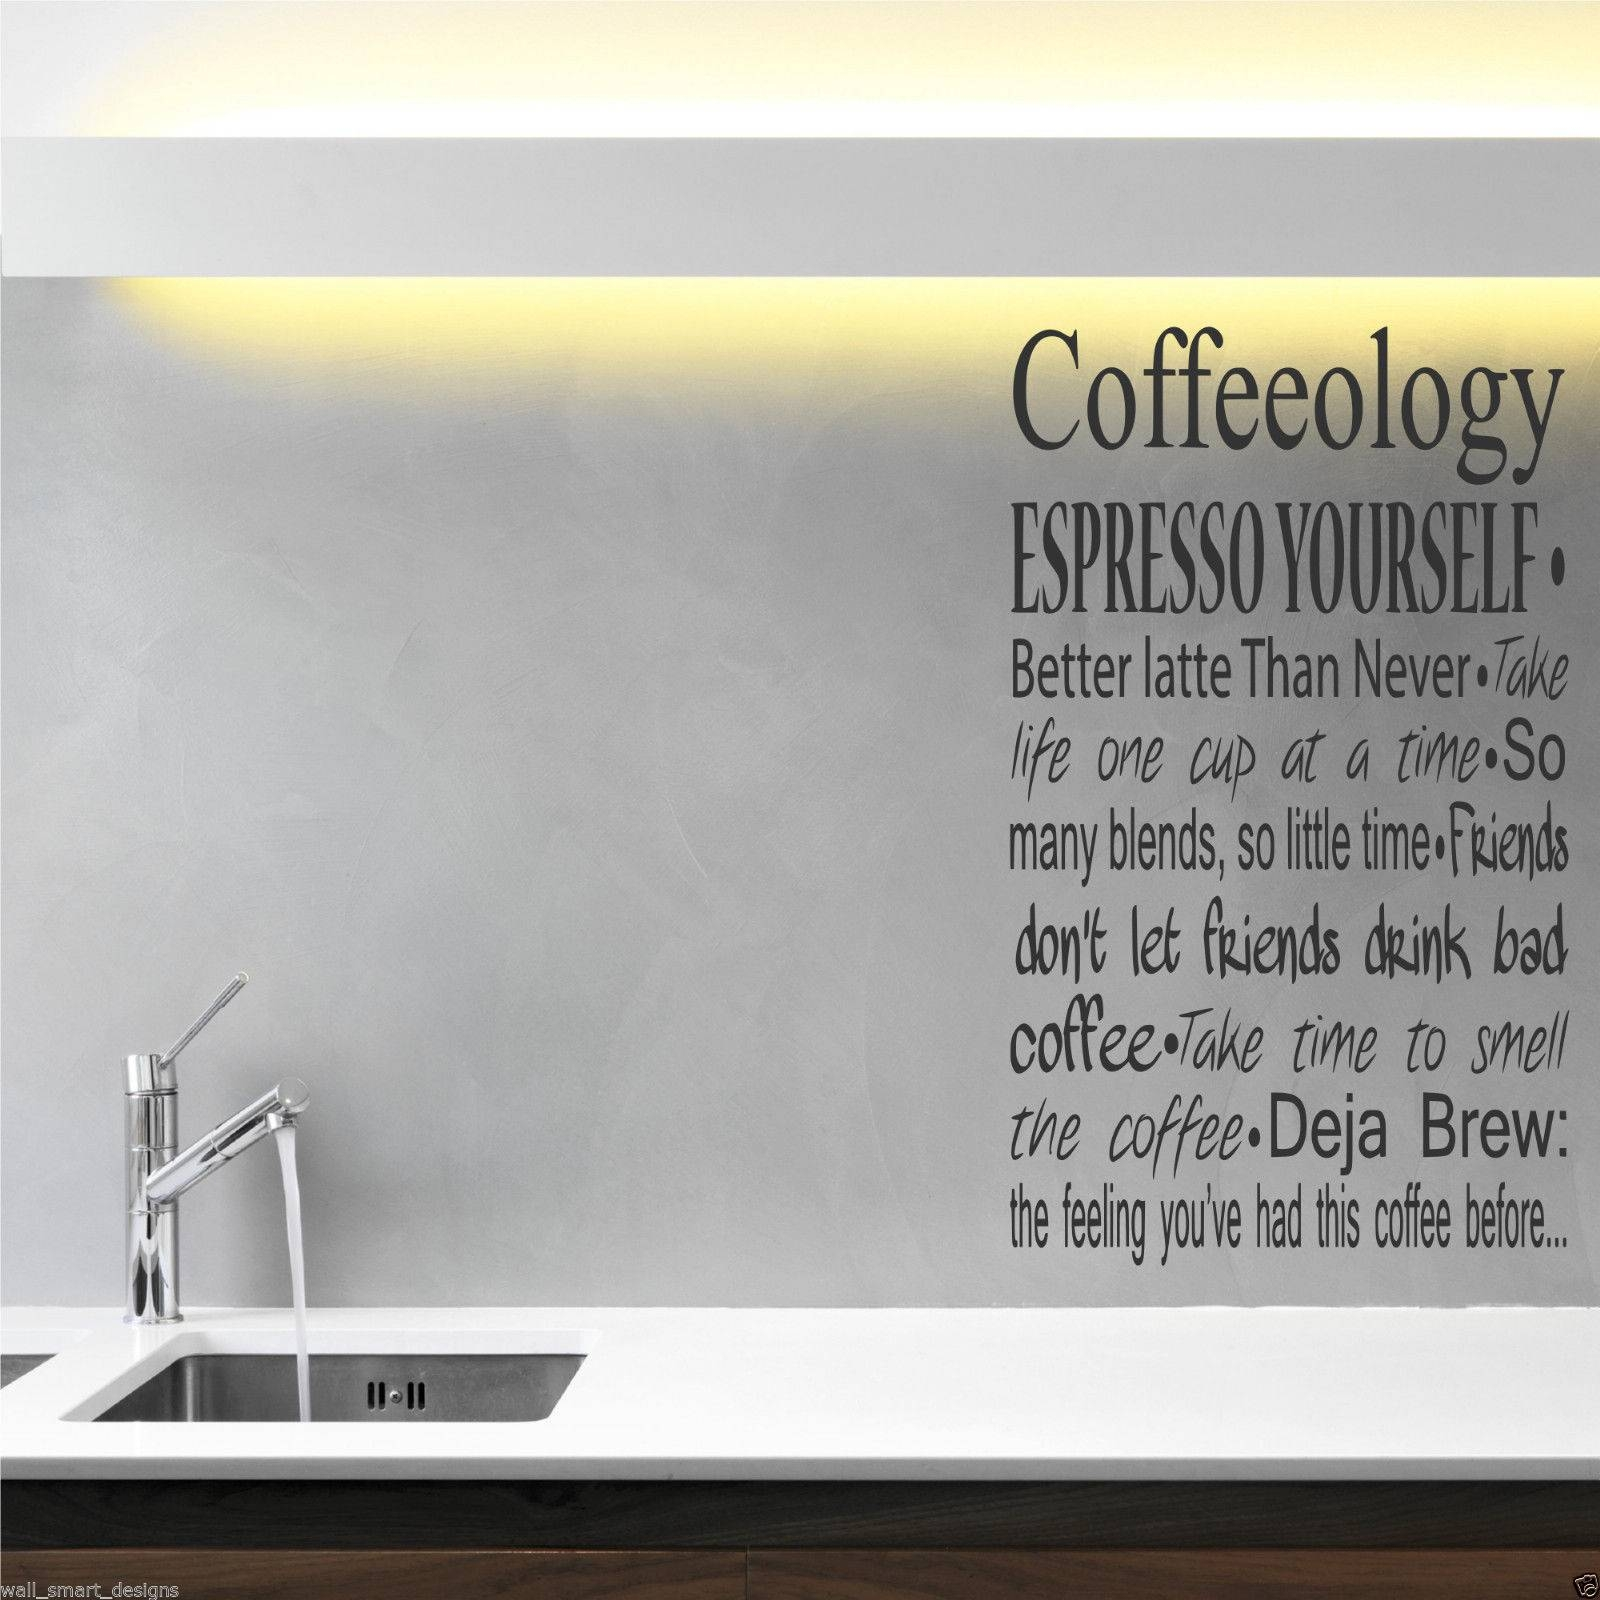 Coffee Coffeeology Kitchen Wall Art Sticker Quote Decal Mural For Latest Cafe Latte Kitchen Wall Art (Gallery 13 of 30)